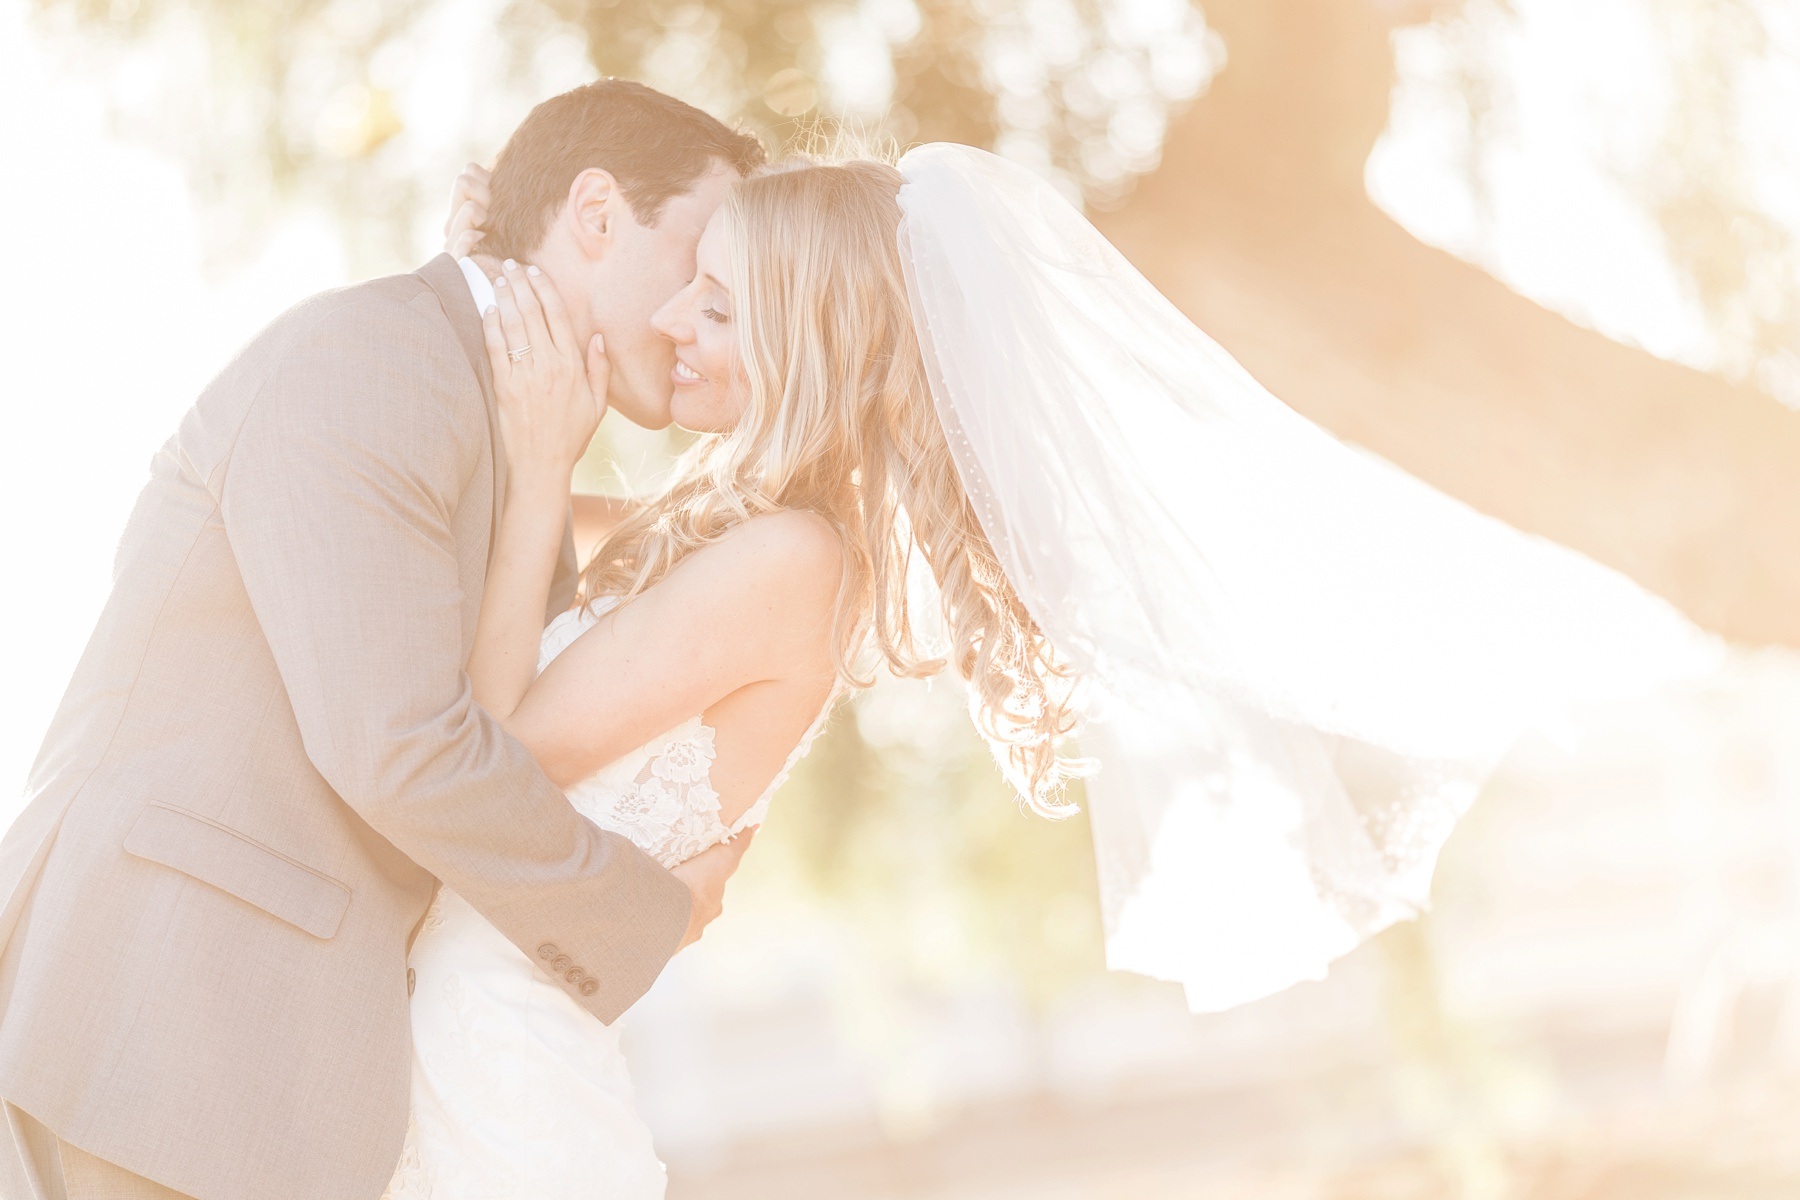 Kristina and Matt have an amazing story, and their wedding was filled with light, love, and happiness.